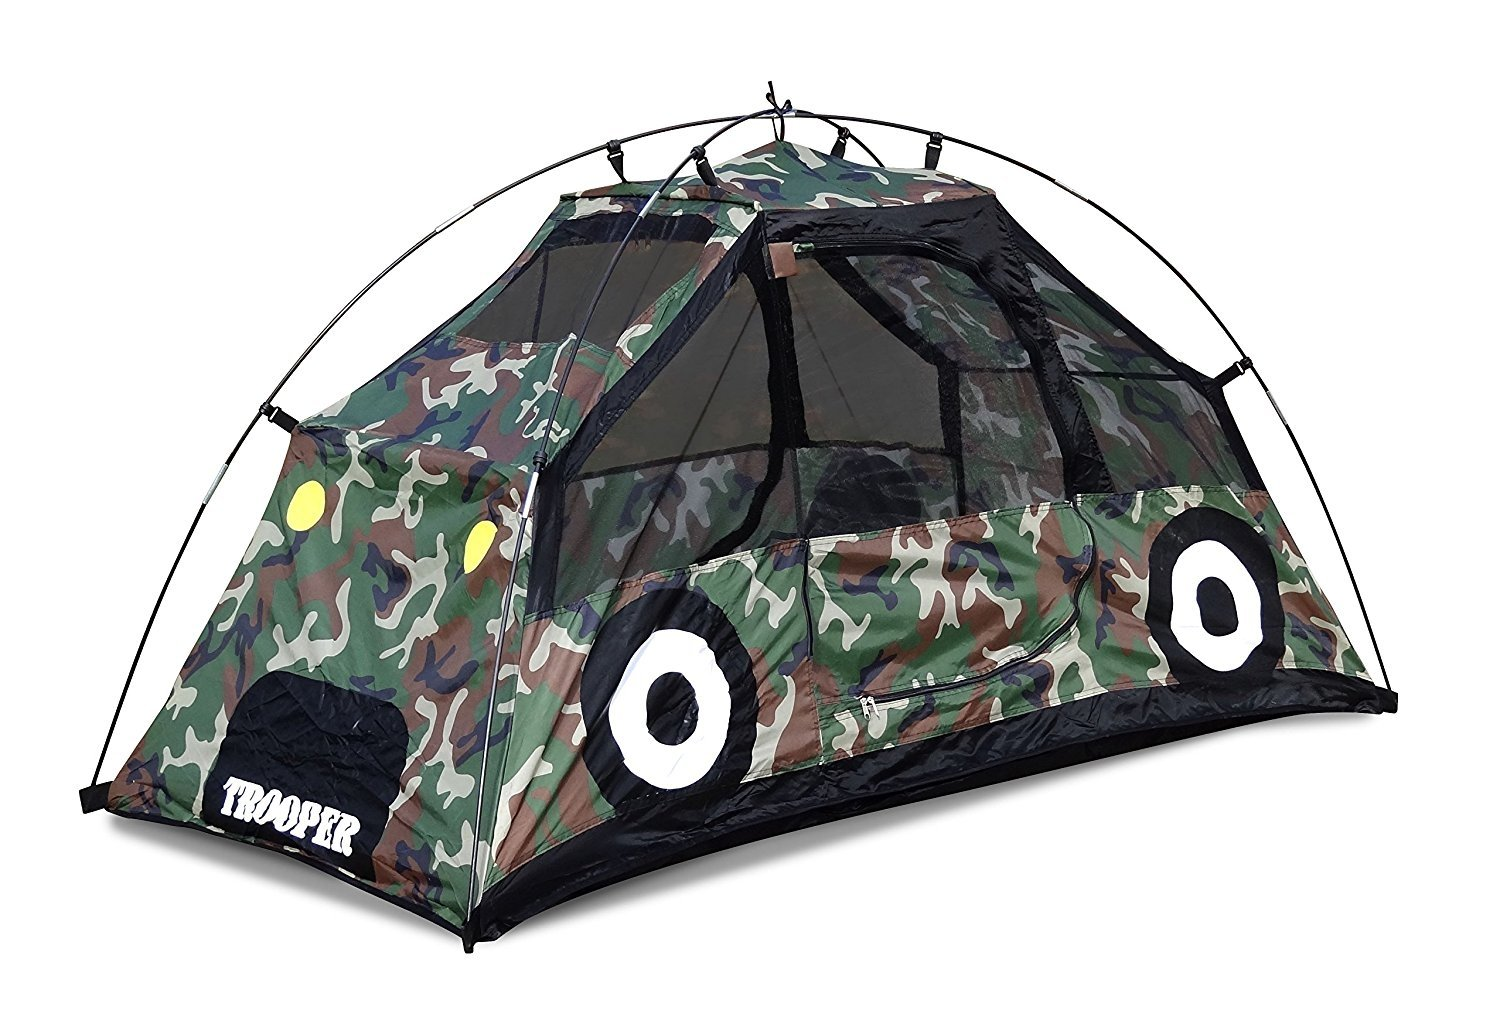 GigaTent Kids Camouflage MUV-(Military Utility Vehicle) Play Tent by GigaTent